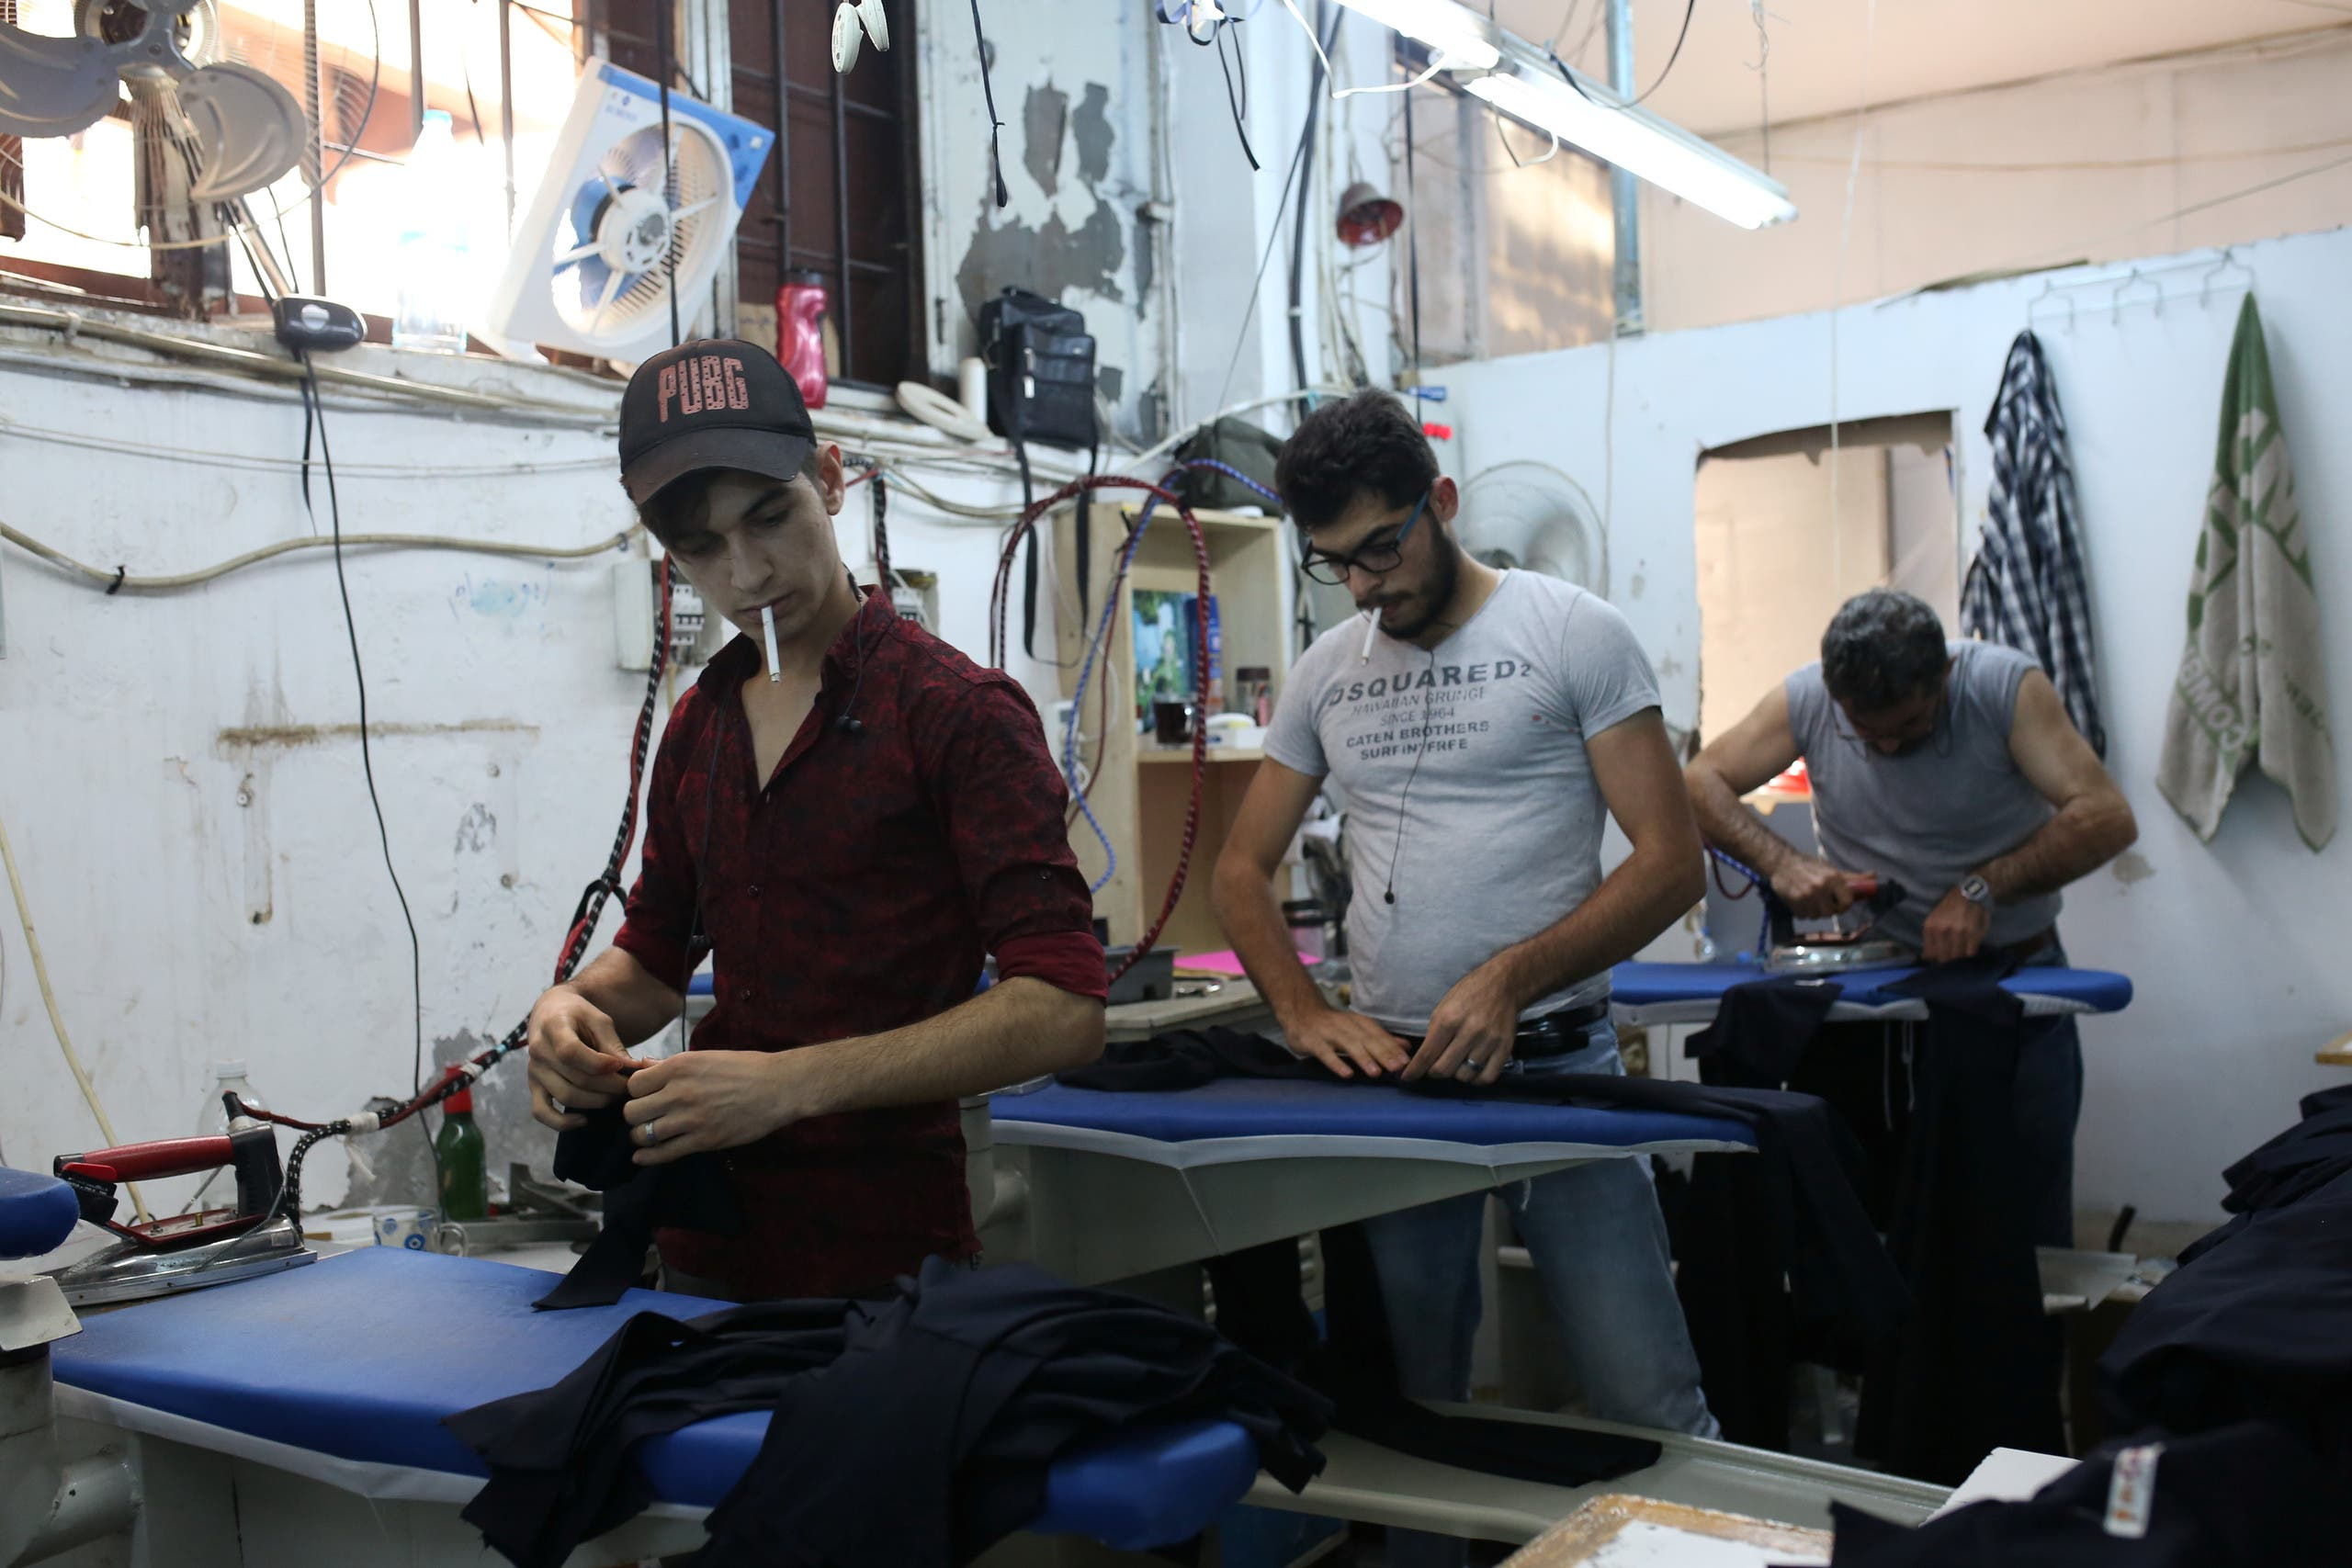 Syrian refugee men work at a textile workshop as day laborer in Istanbul, Turkey, June 20, 2019. (Reuters)